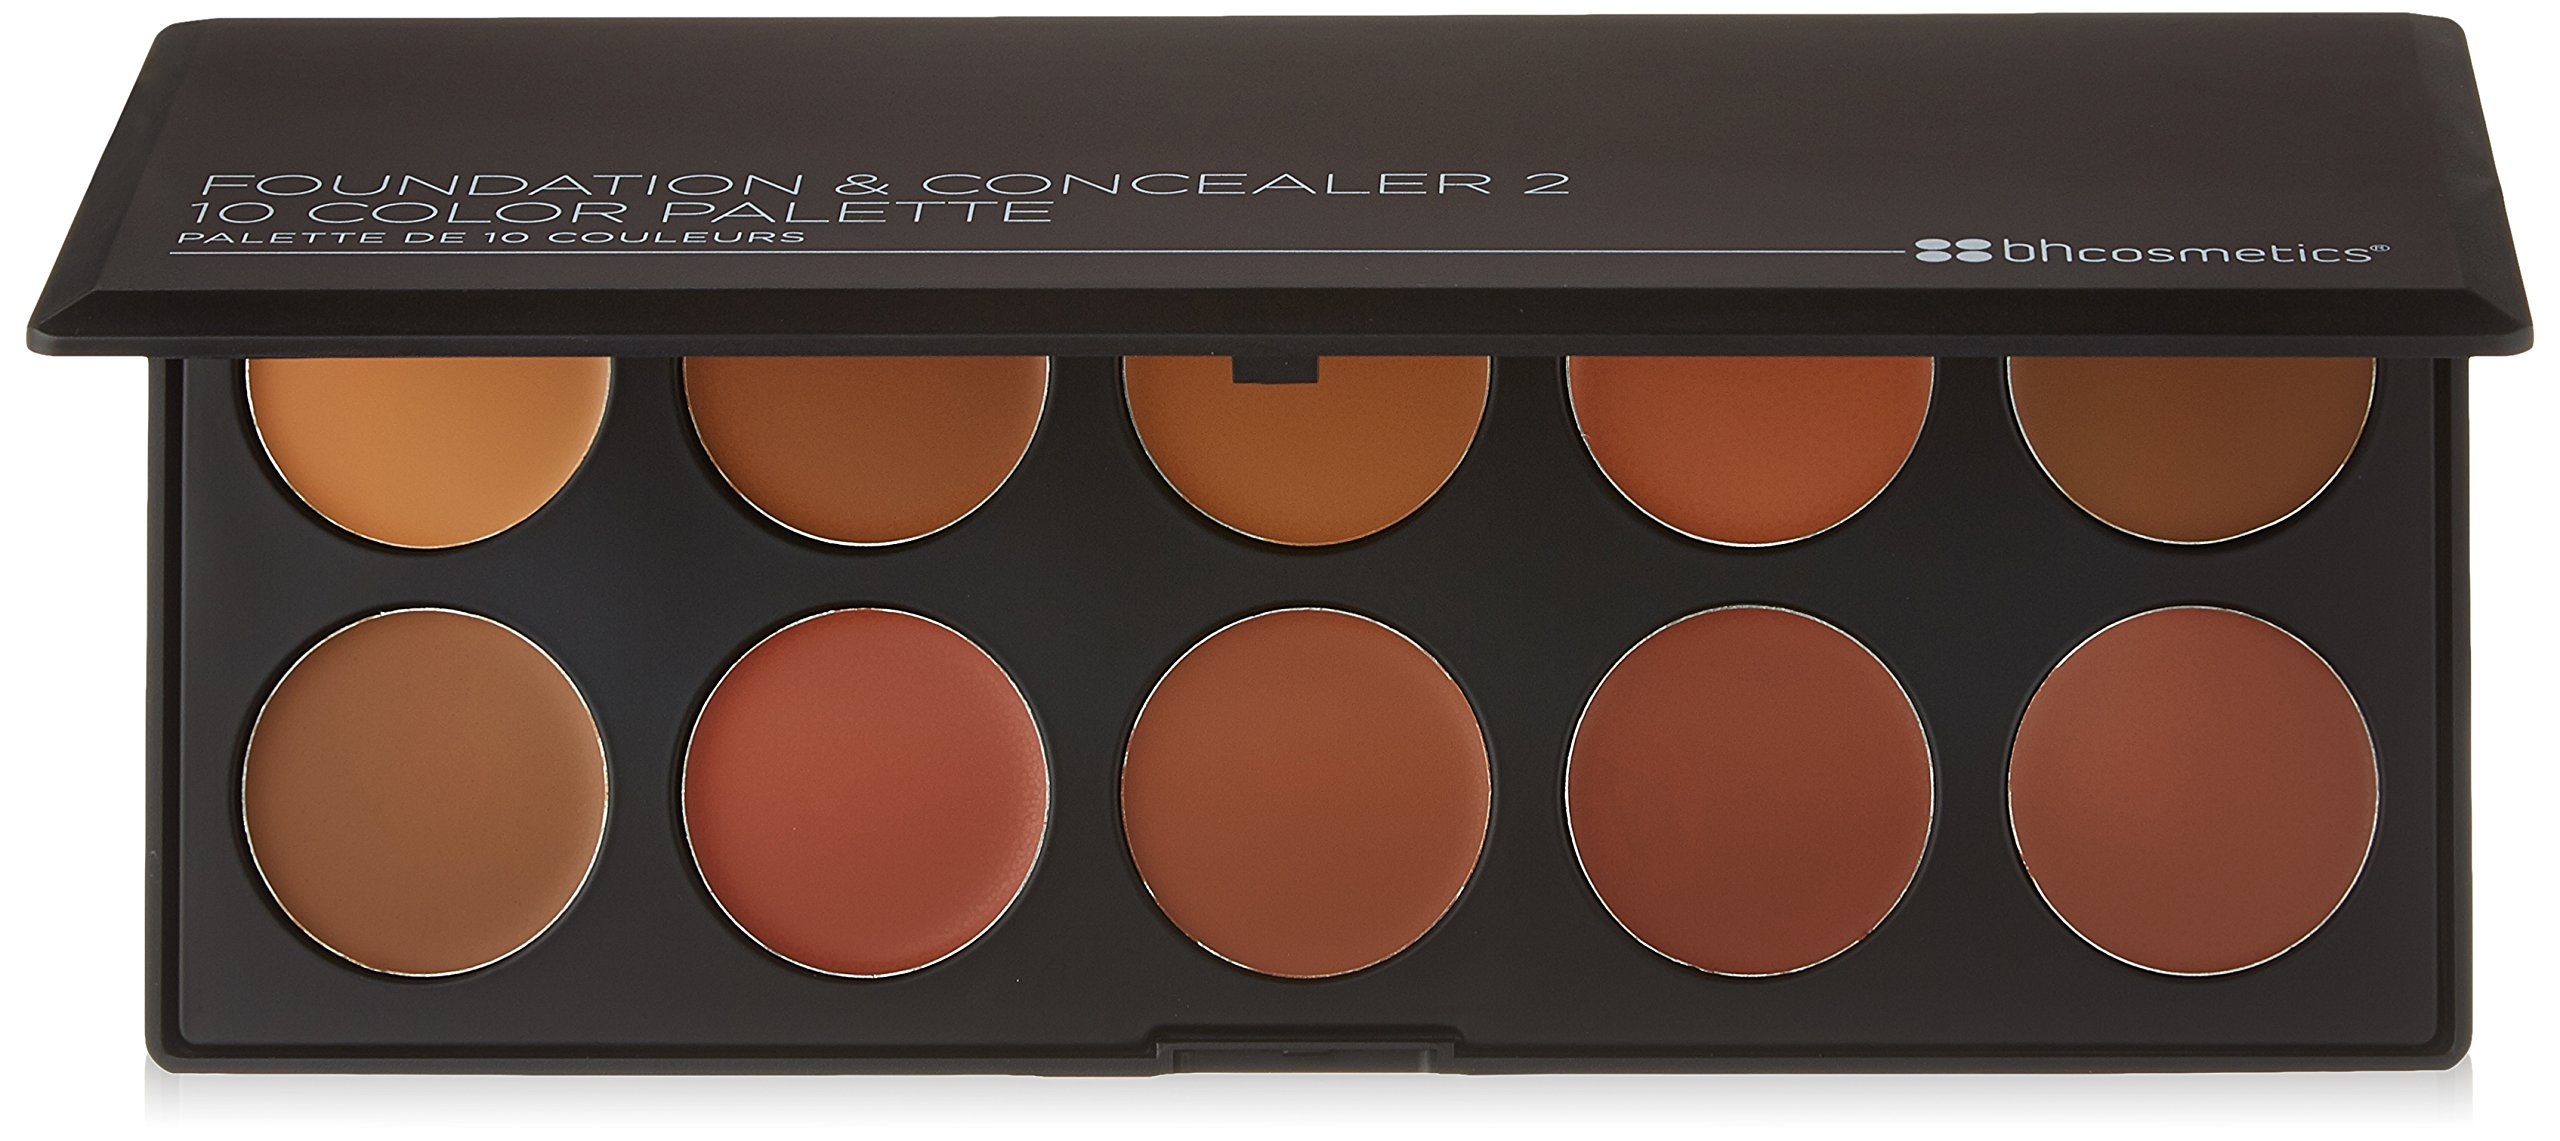 BH Cosmetics - Foundation and Concealer 2 Palette